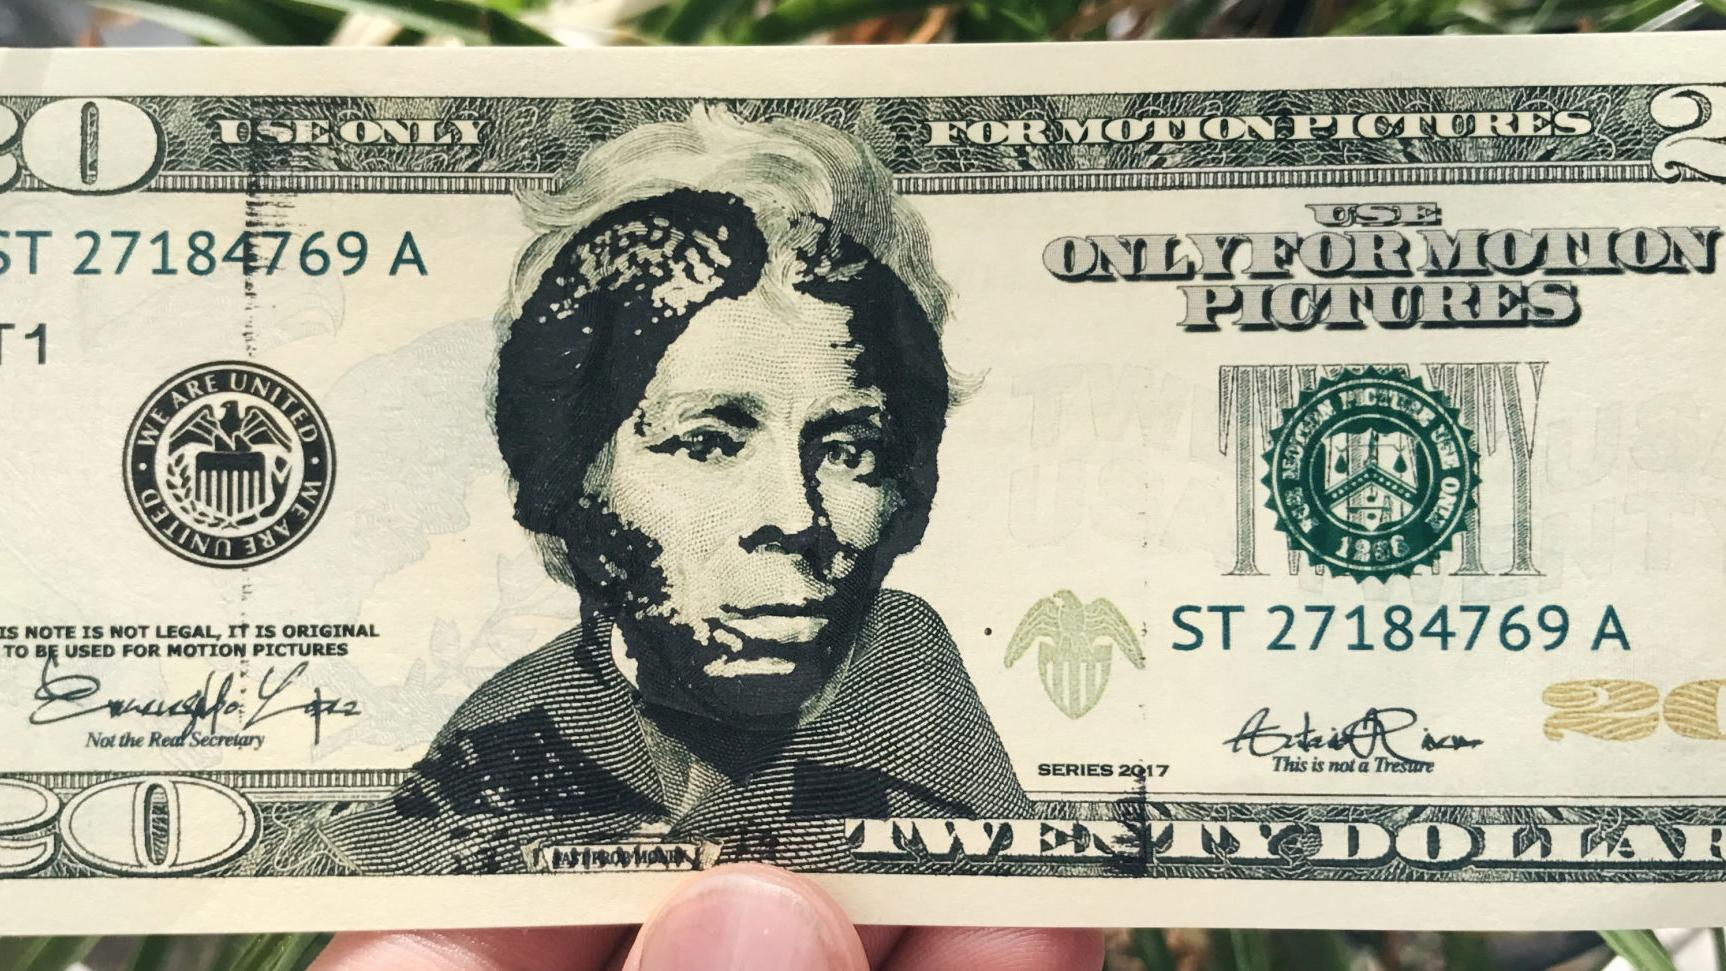 Harriet Tubman is already appearing on $20 bills after a designer created a stamp to superimpose her image